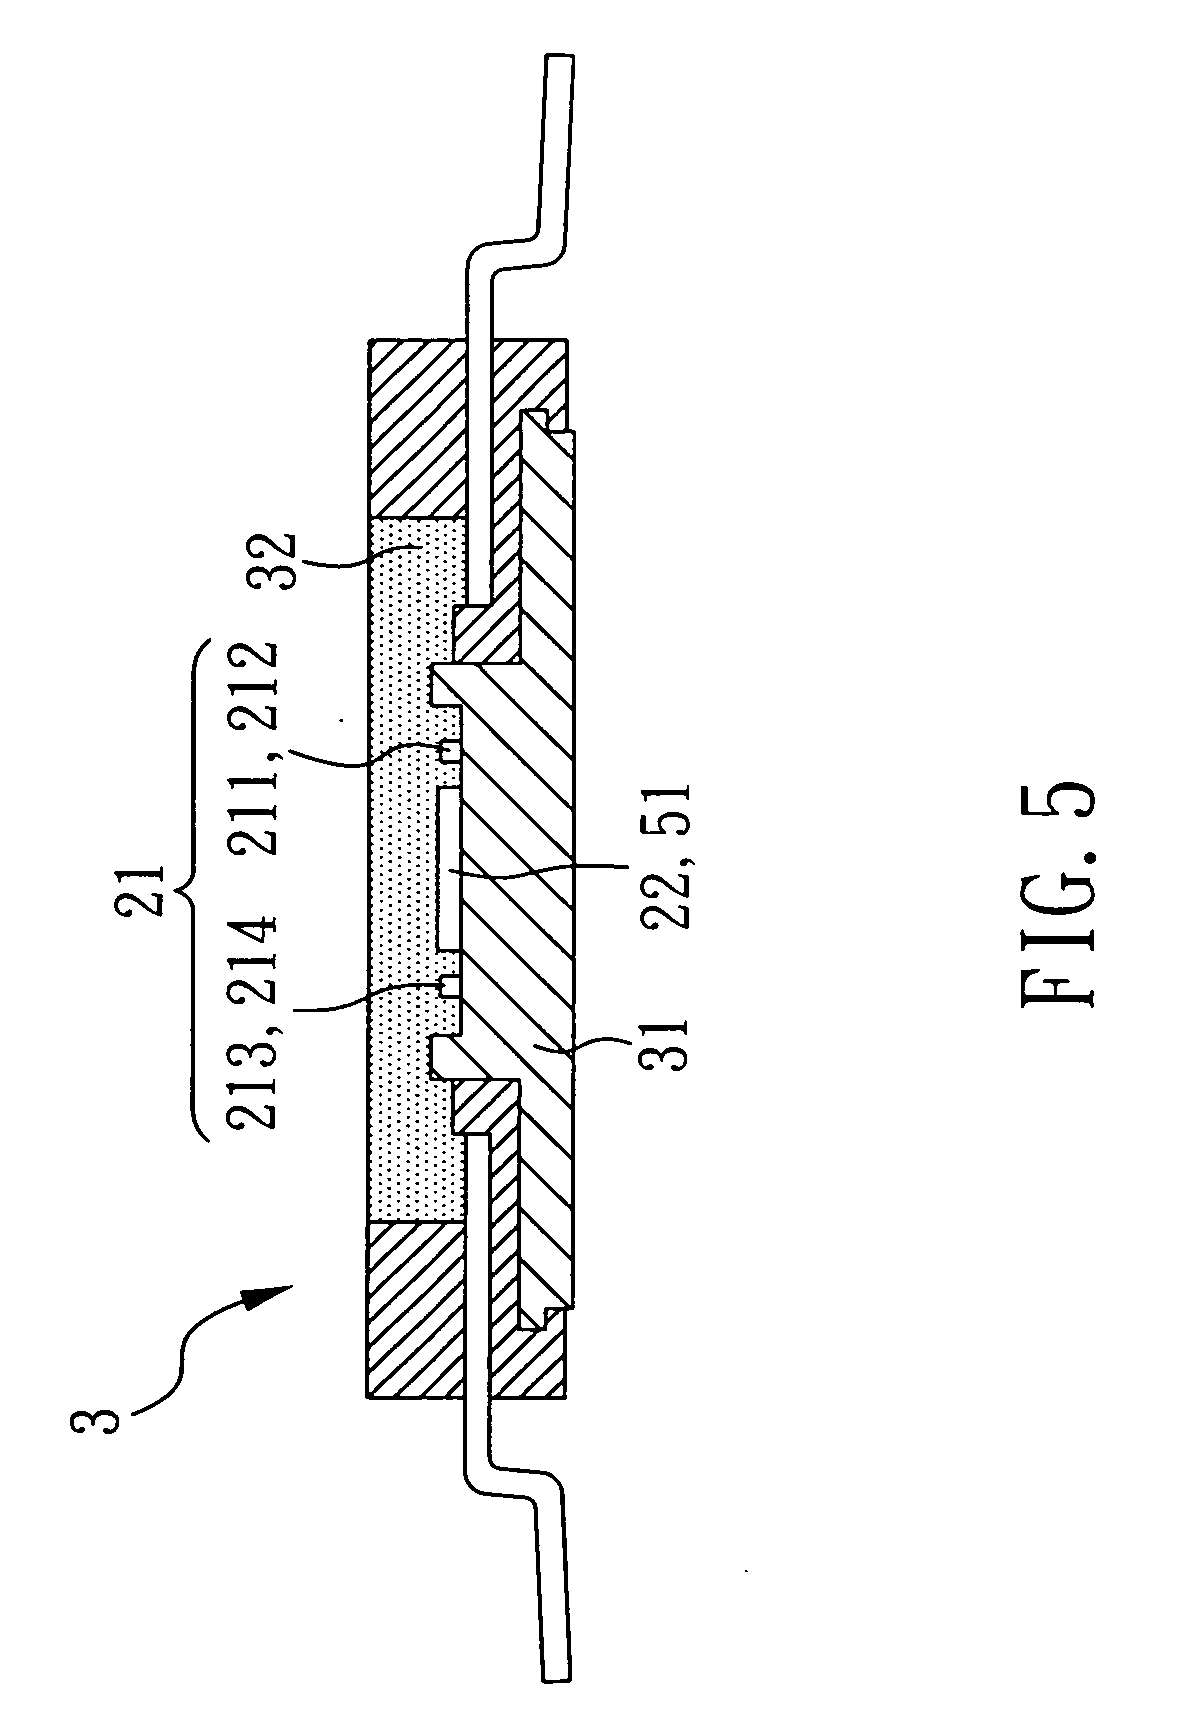 US20110084617 on diode anode cathode positive negative